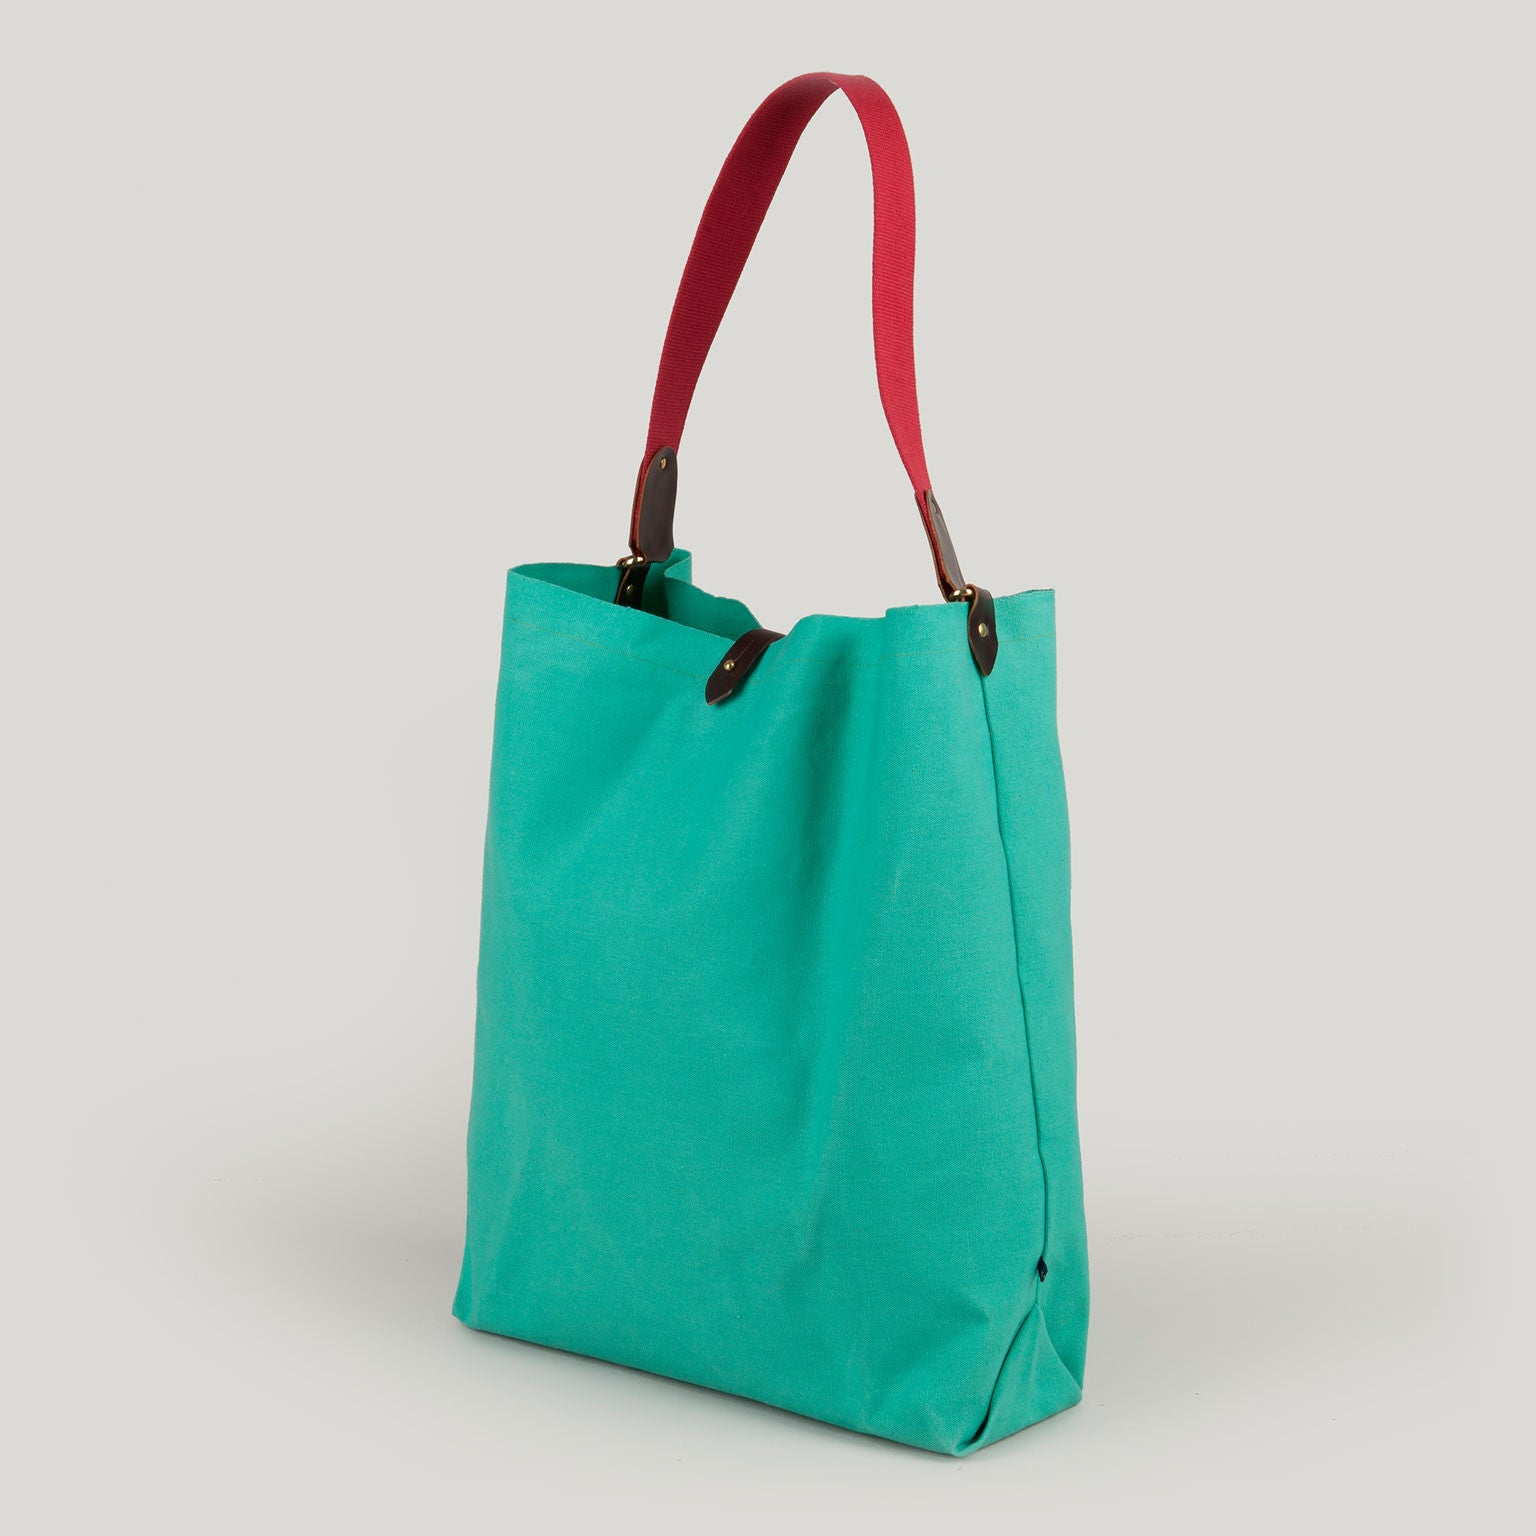 SCARLETT <br/> Canvas Tote Bag <br/> Verdigris